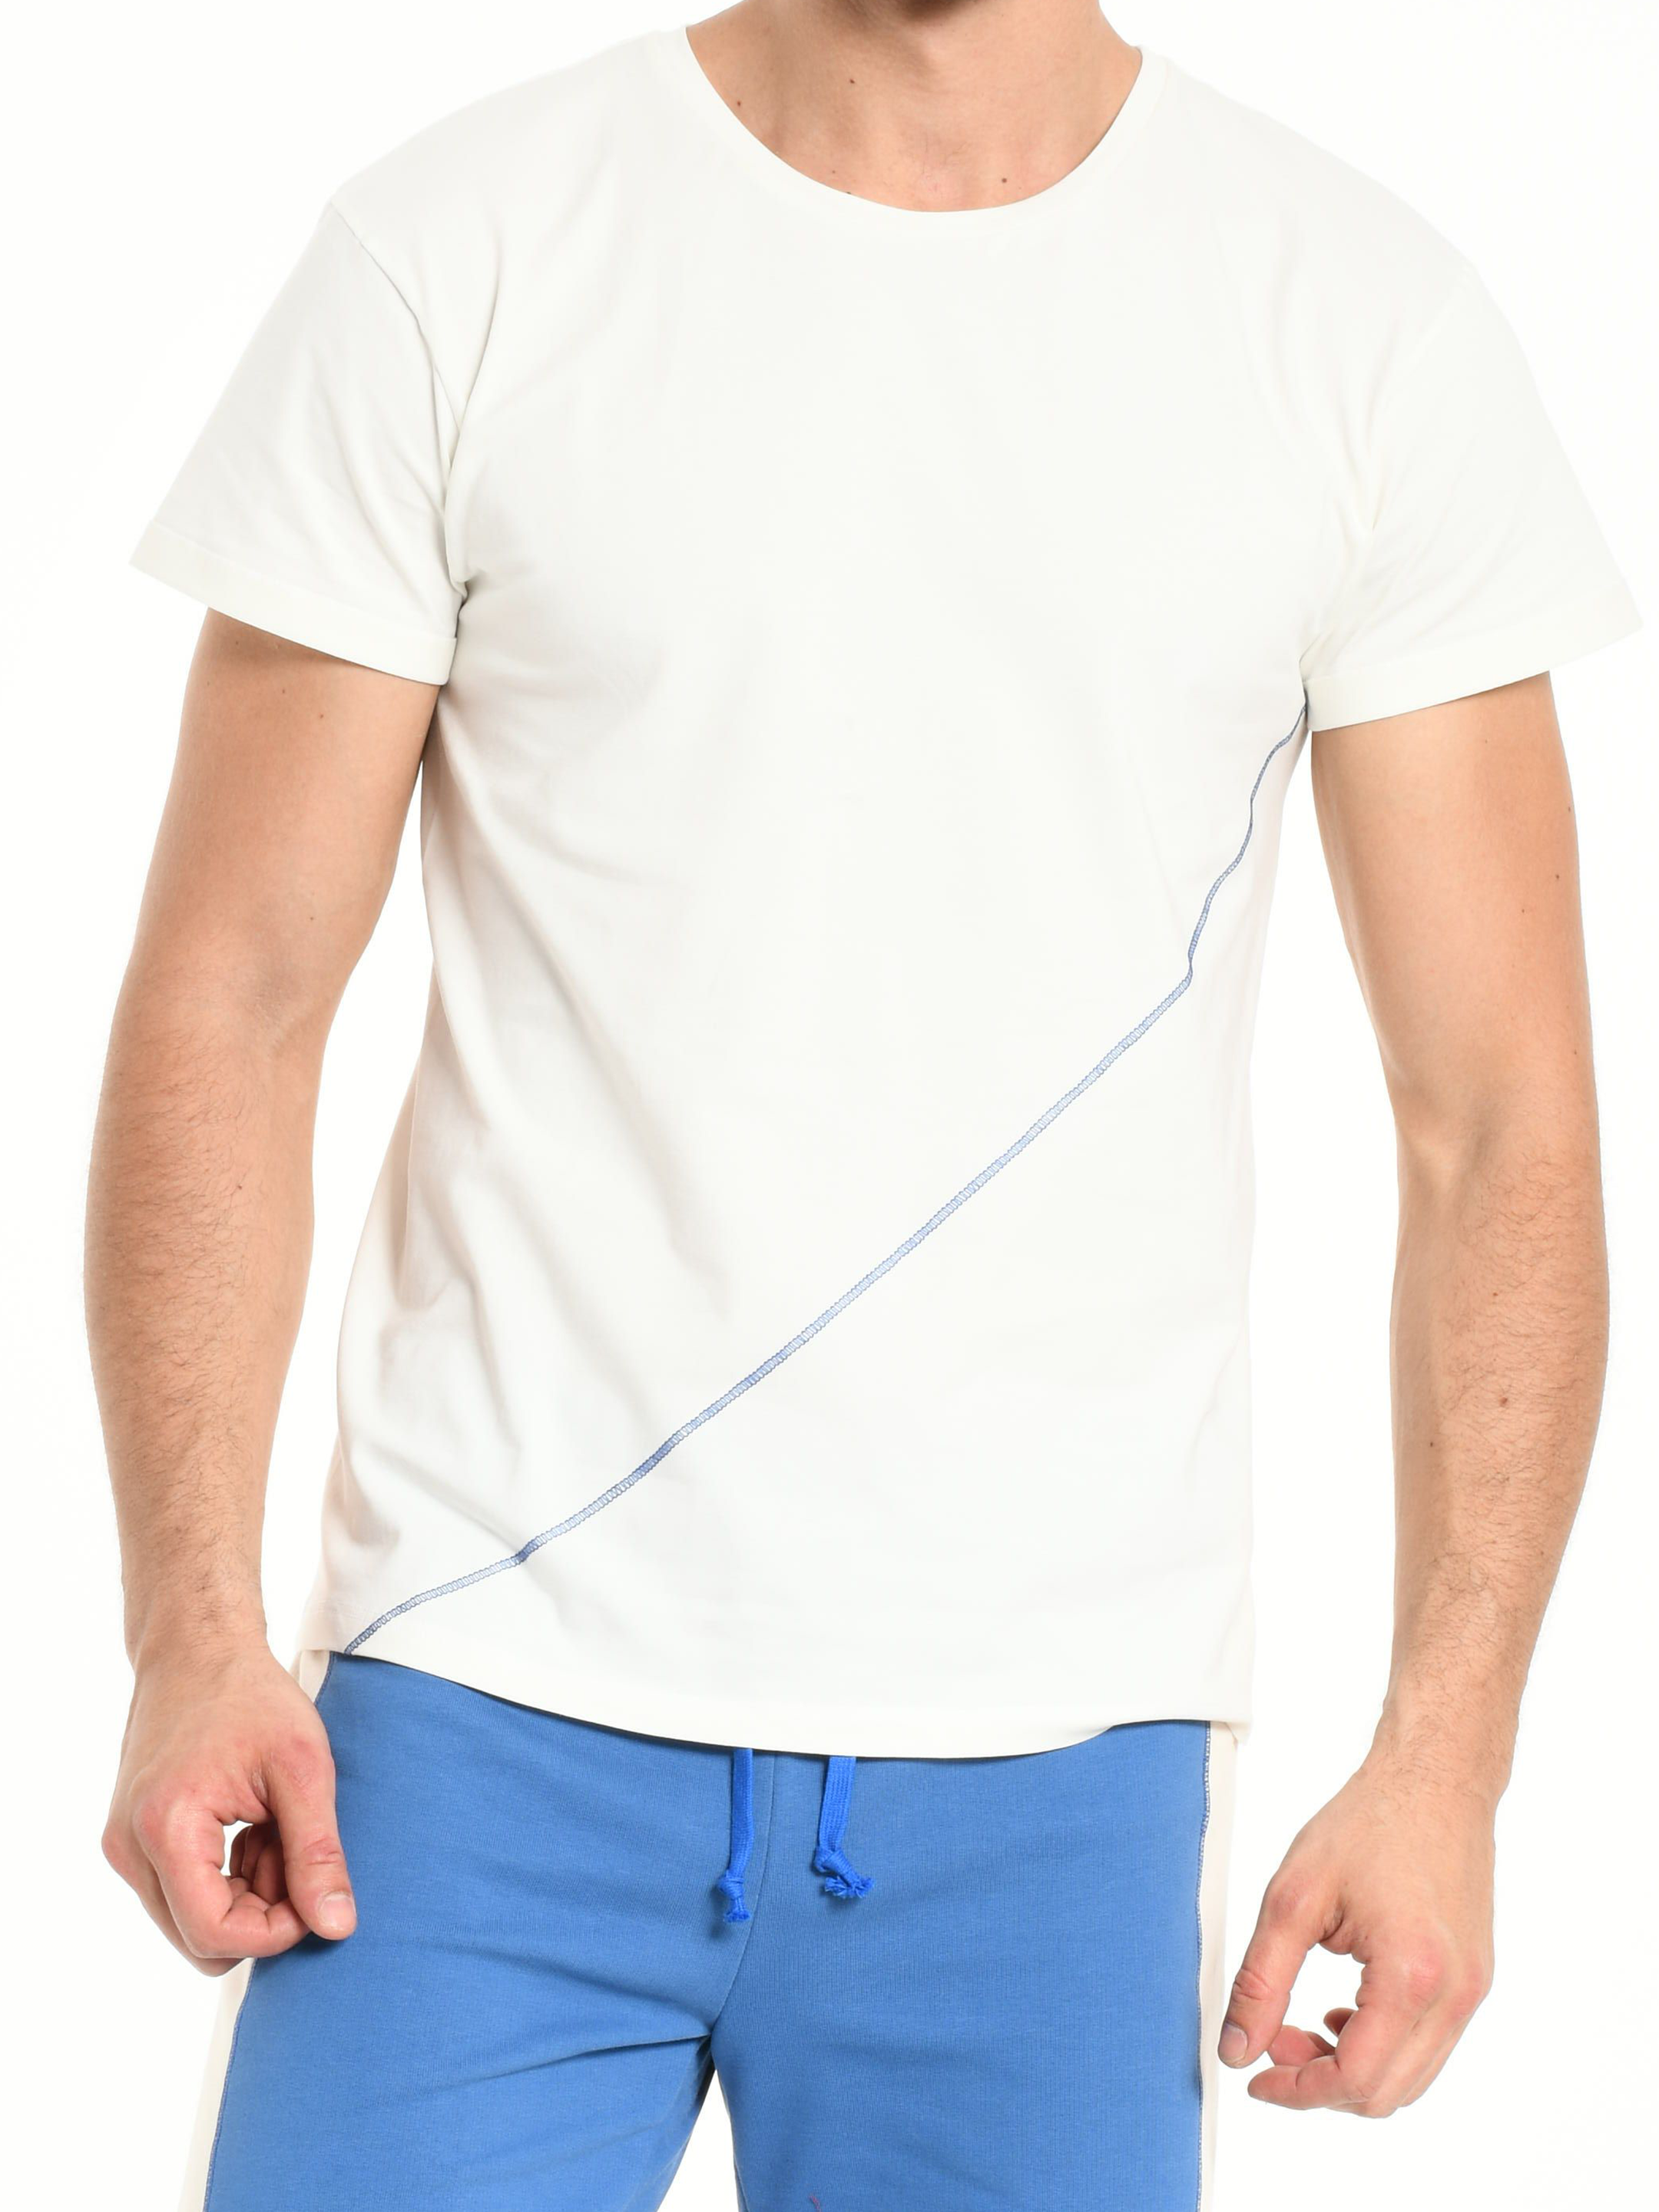 TEE SHIRT OFF WHITE DIAGONAL SEWING BLUE from BEARD & FRINGE